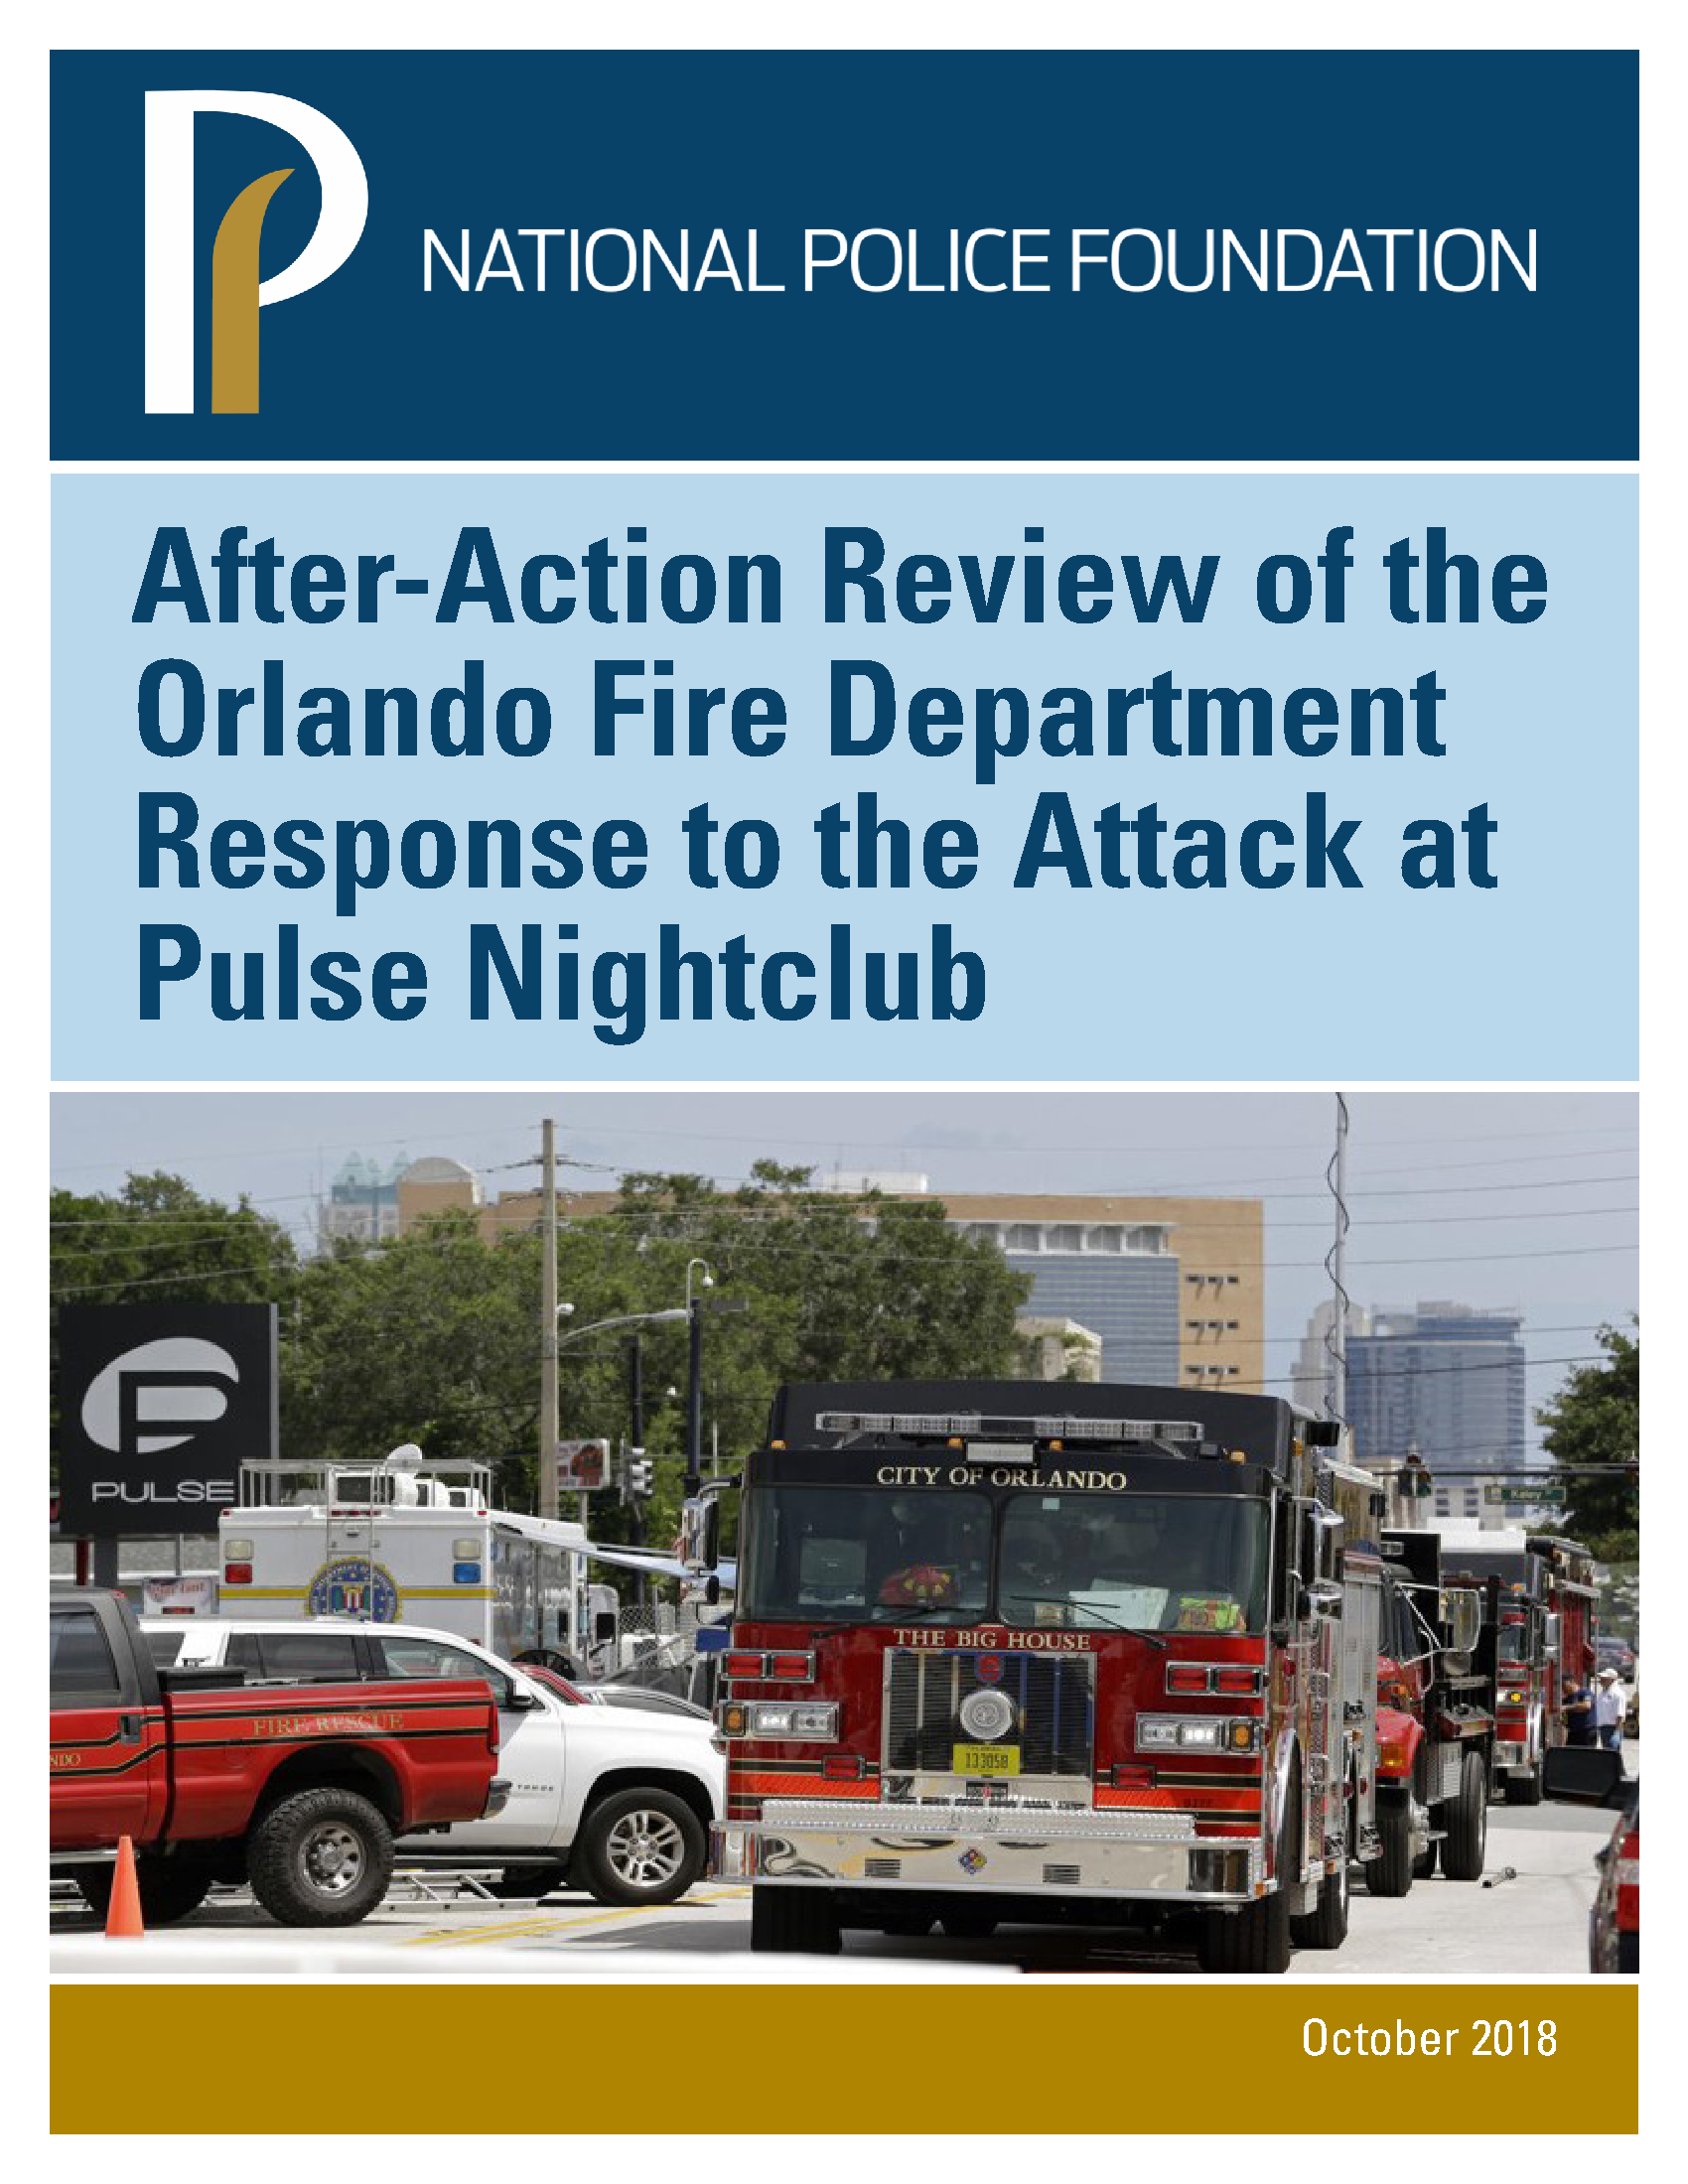 RaCERS Director Contributes to National Police Foundation report on Fire/EMS response to Pulse Nightclub Attack